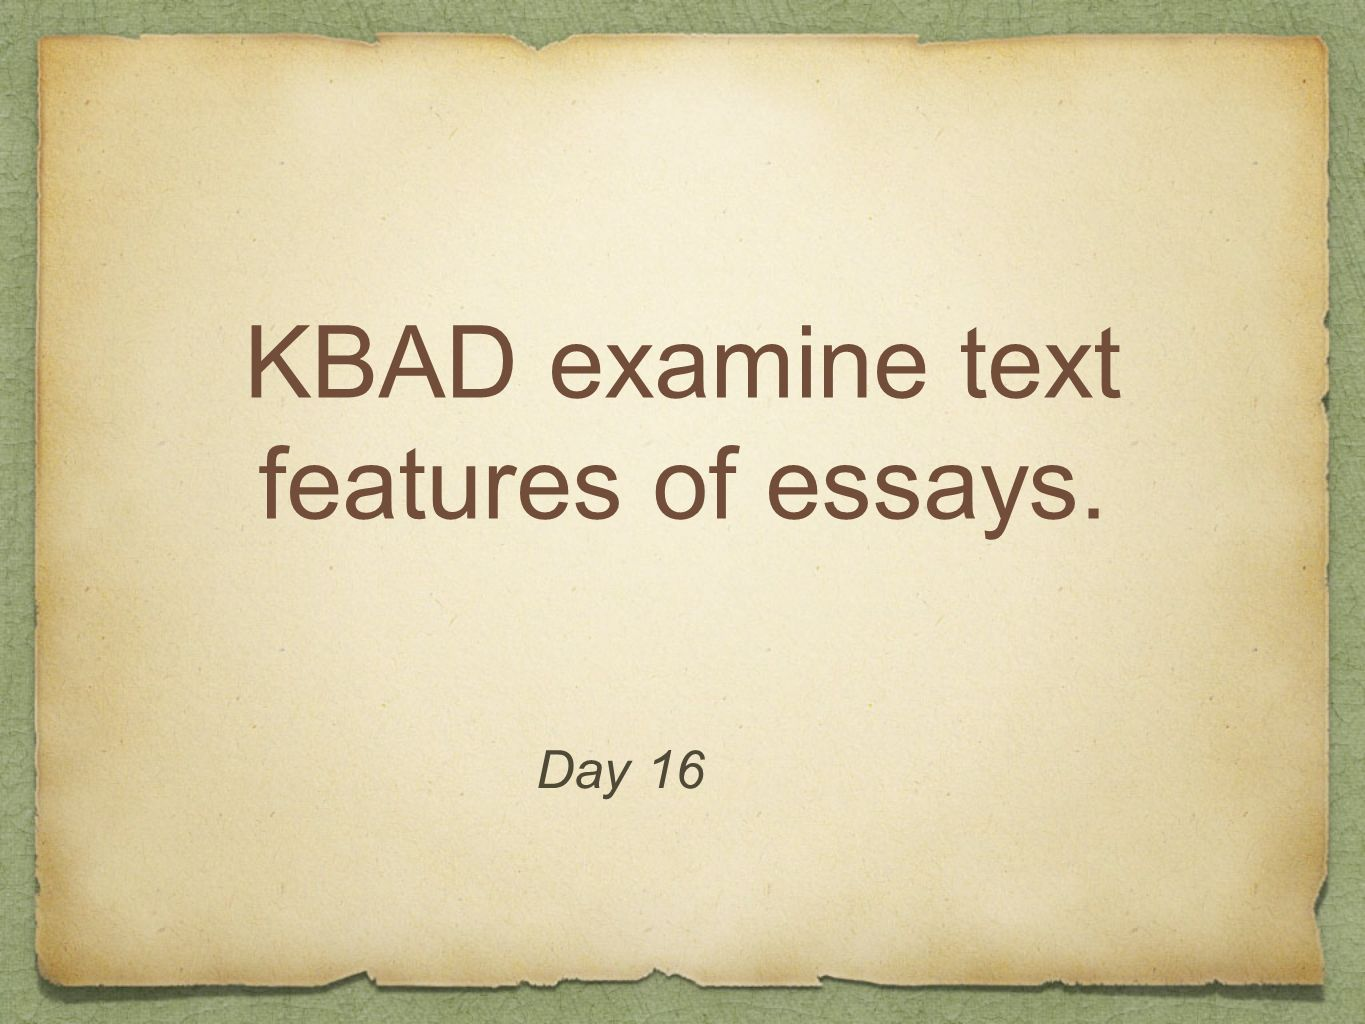 KBAD examine text features of essays.